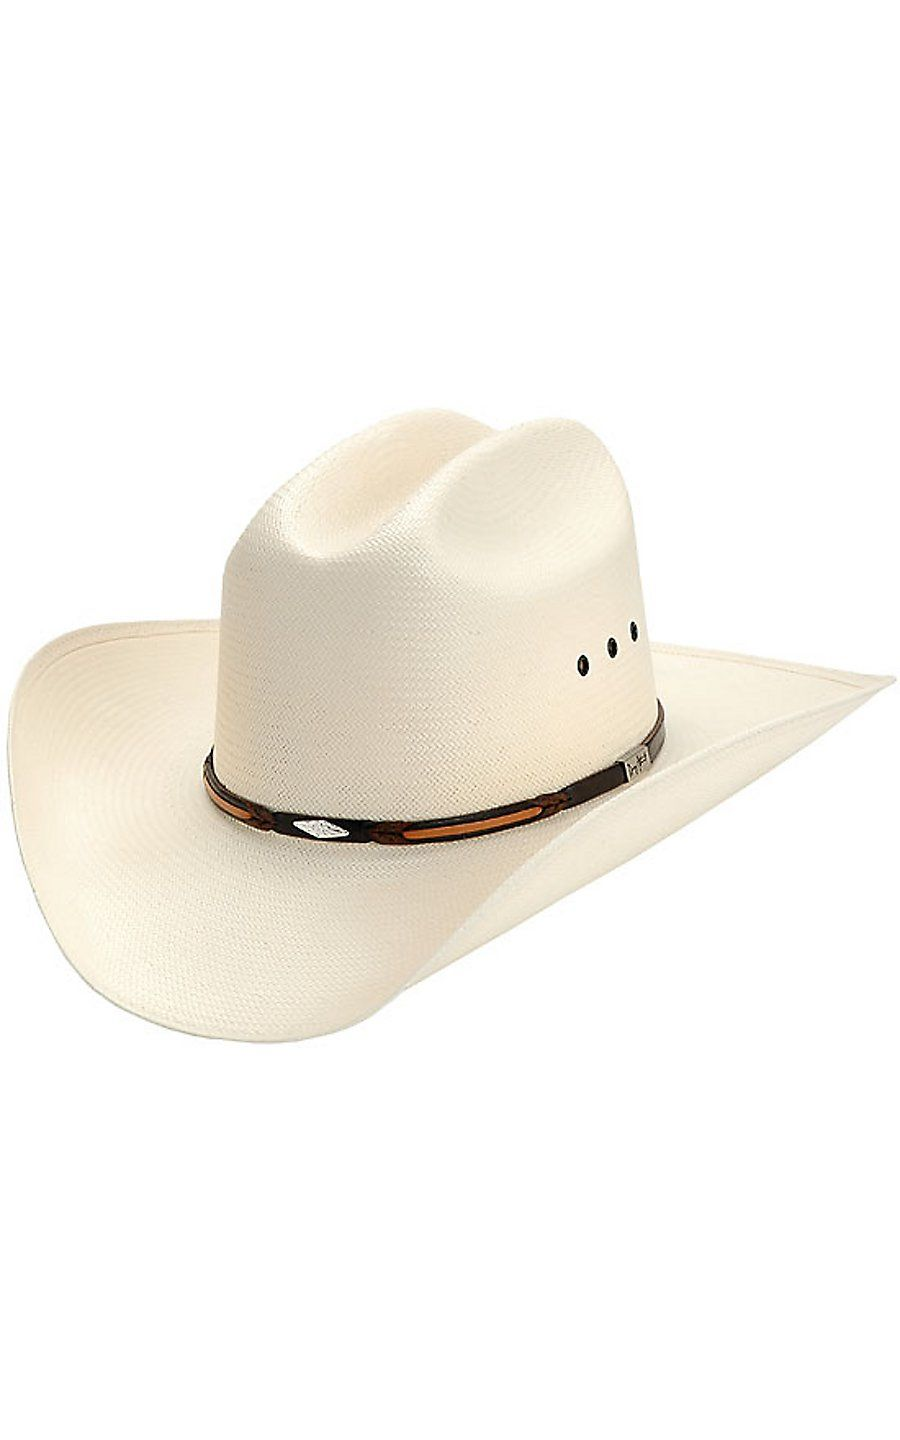 Resistol 10X George Strait Lookout Straw Cowboy Hat  43e21f57039